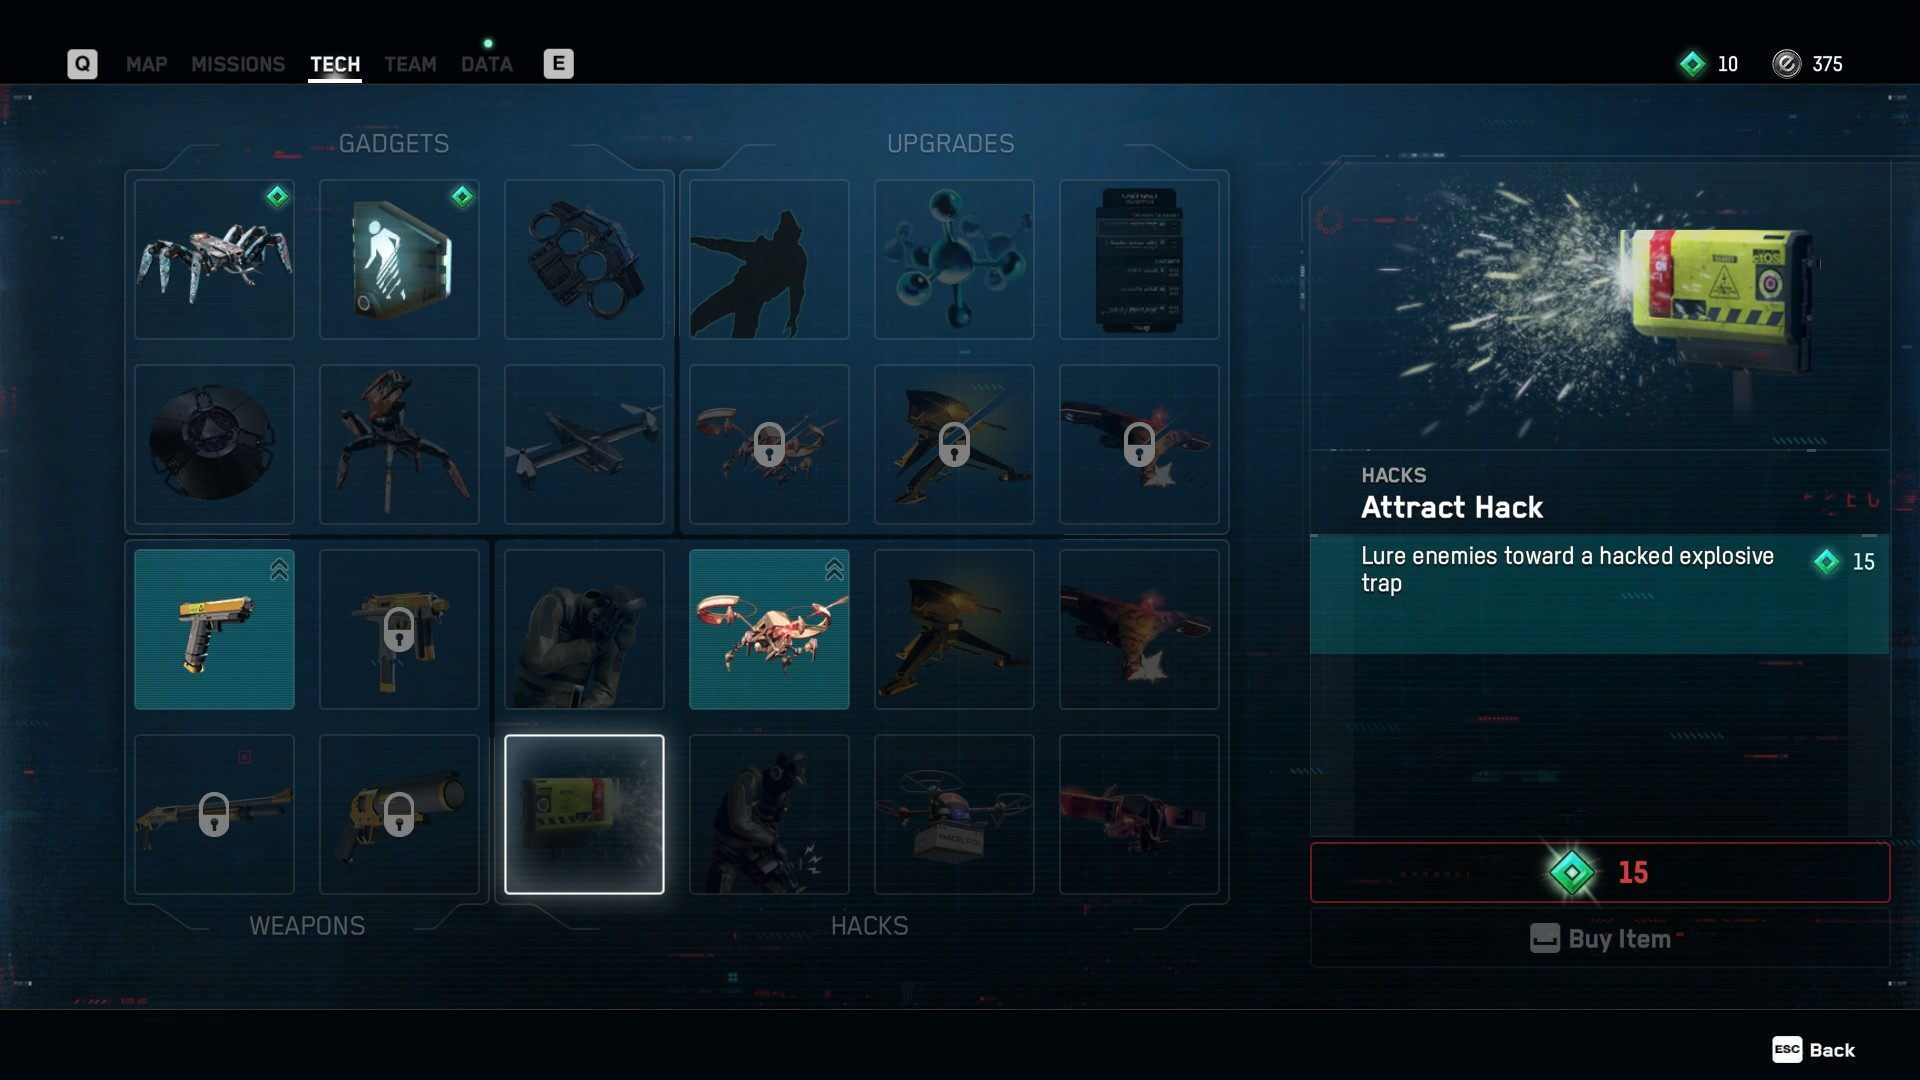 The Attract Hack in the Tech Menu in Watch Dogs Legion